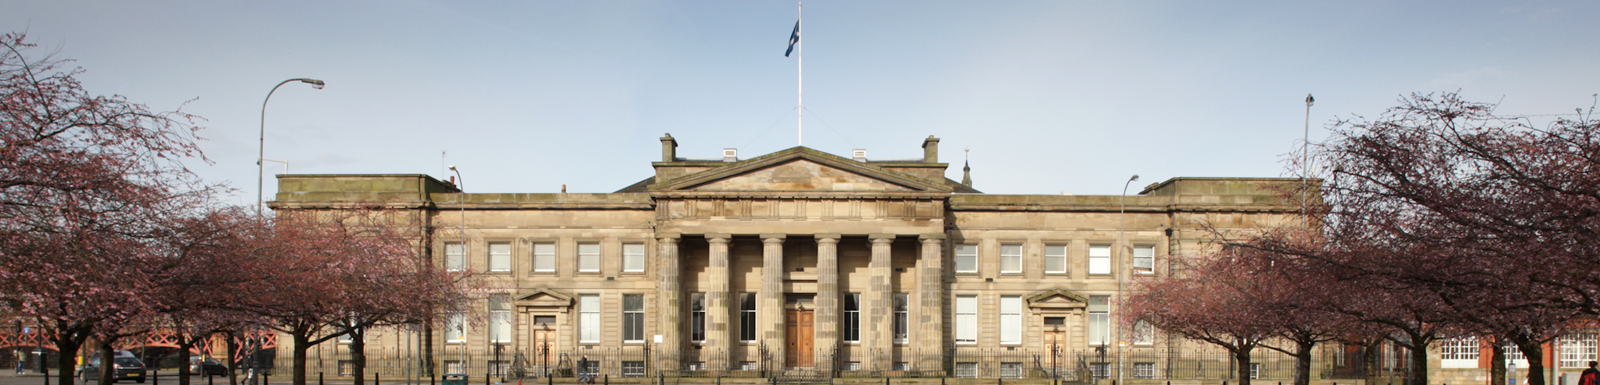 The Justiciary Courthouse at Glasgow Green